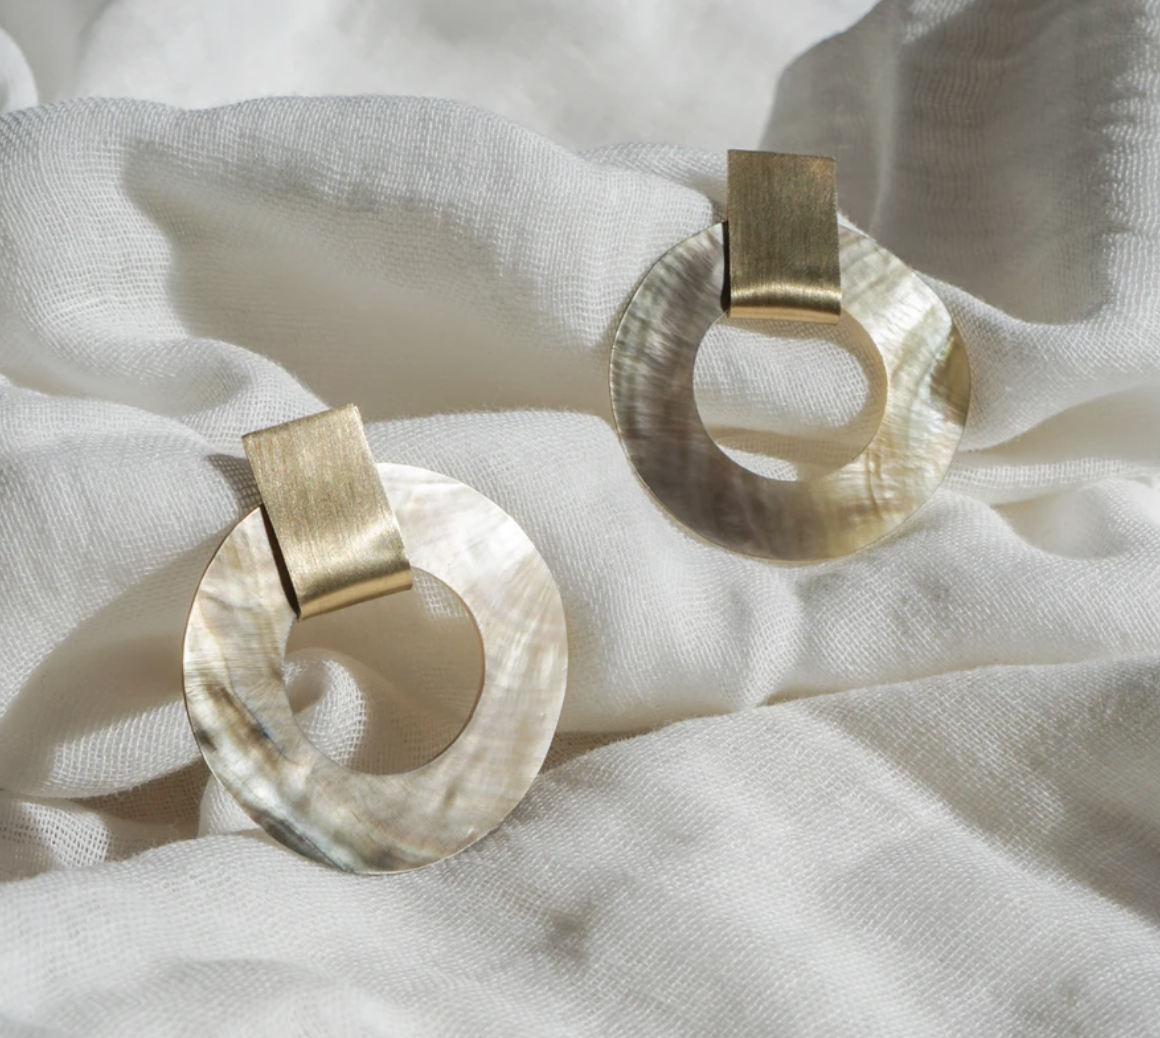 Pair of pearl hoops with a brass accent